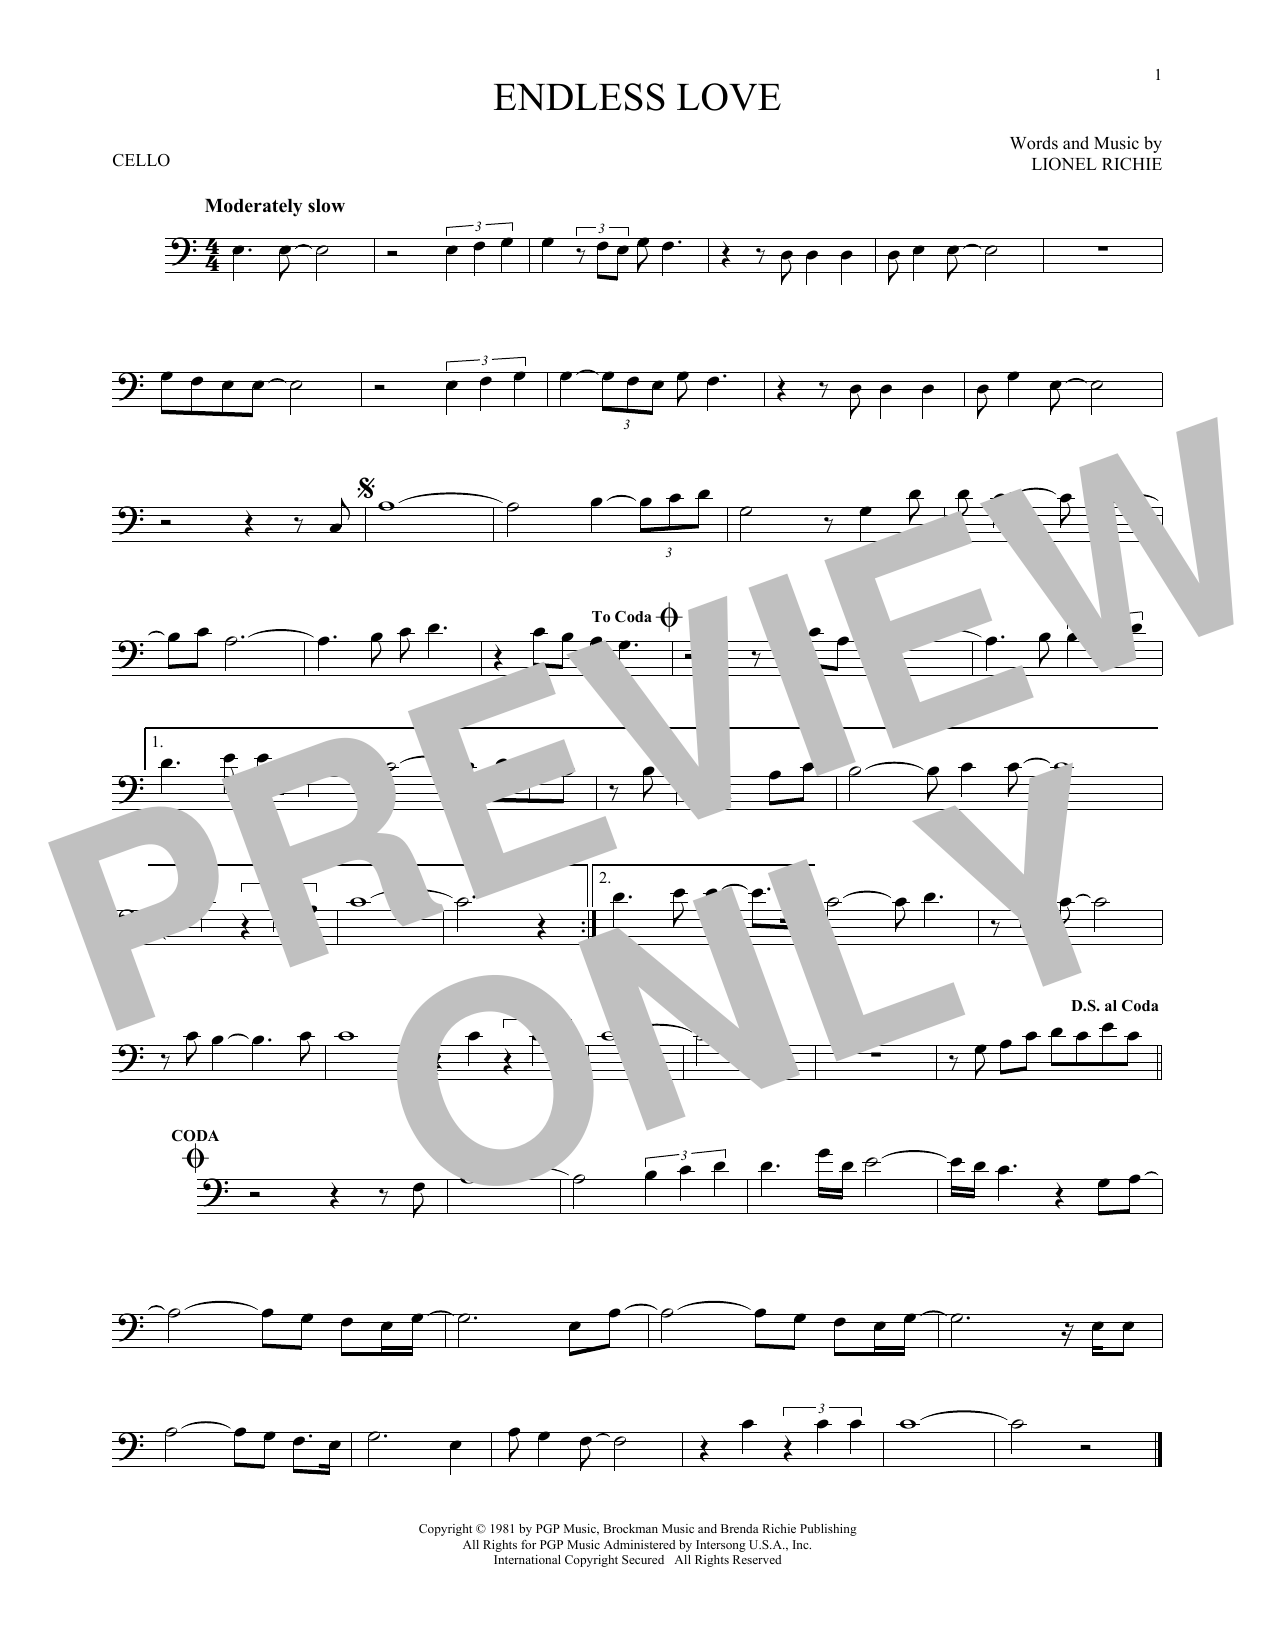 Diana Ross & Lionel Richie Endless Love sheet music preview music notes and score for French Horn including 1 page(s)